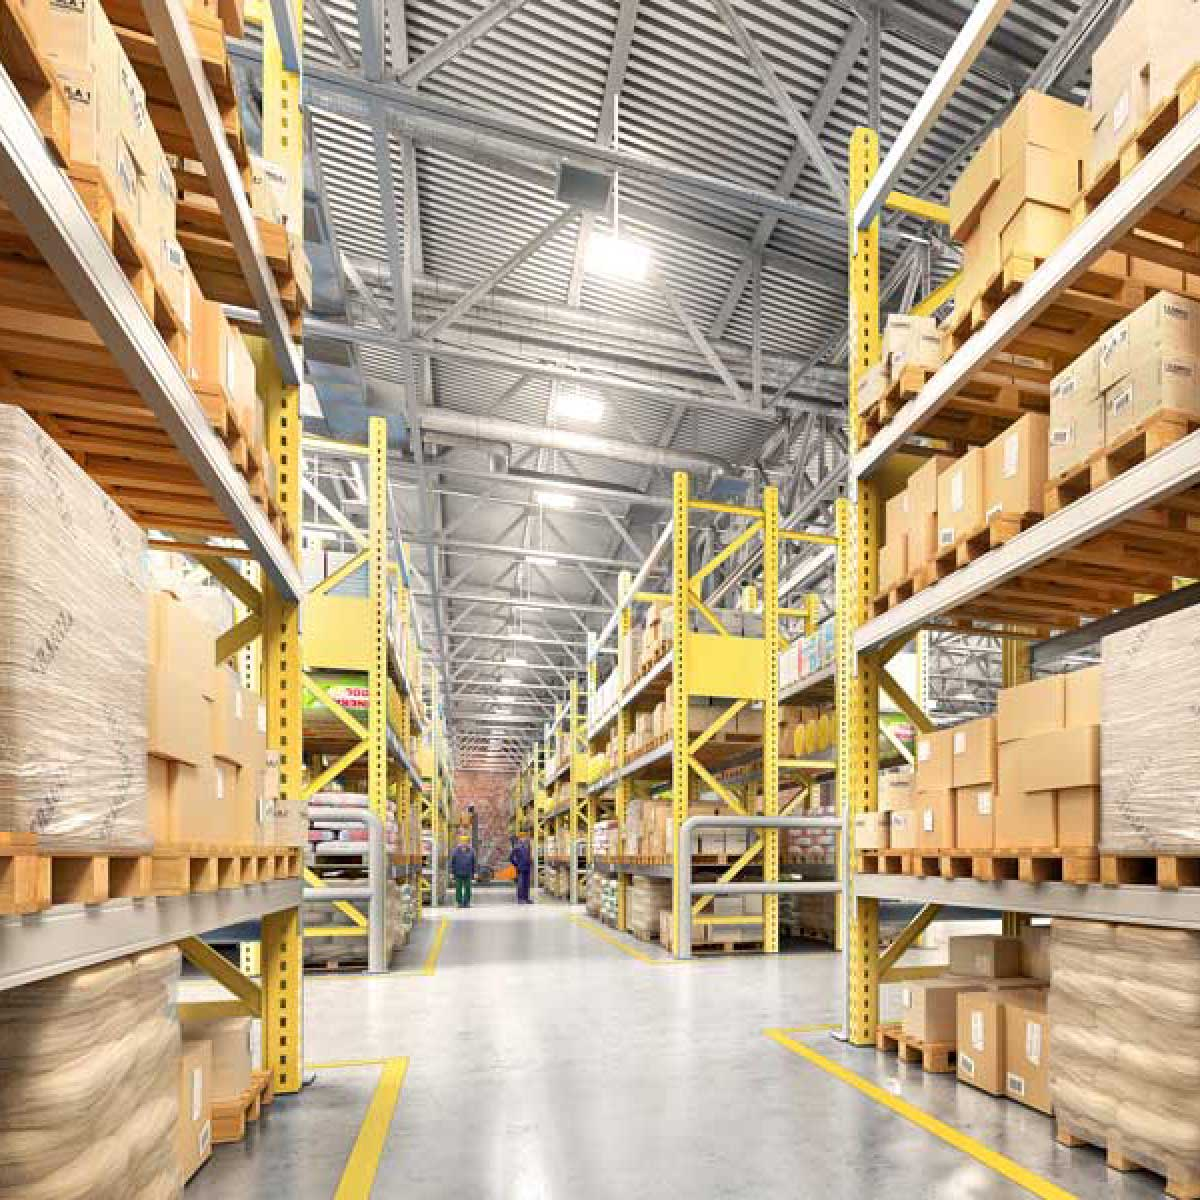 empty manufacturing warehouse with boxes and equipment stored along the walls